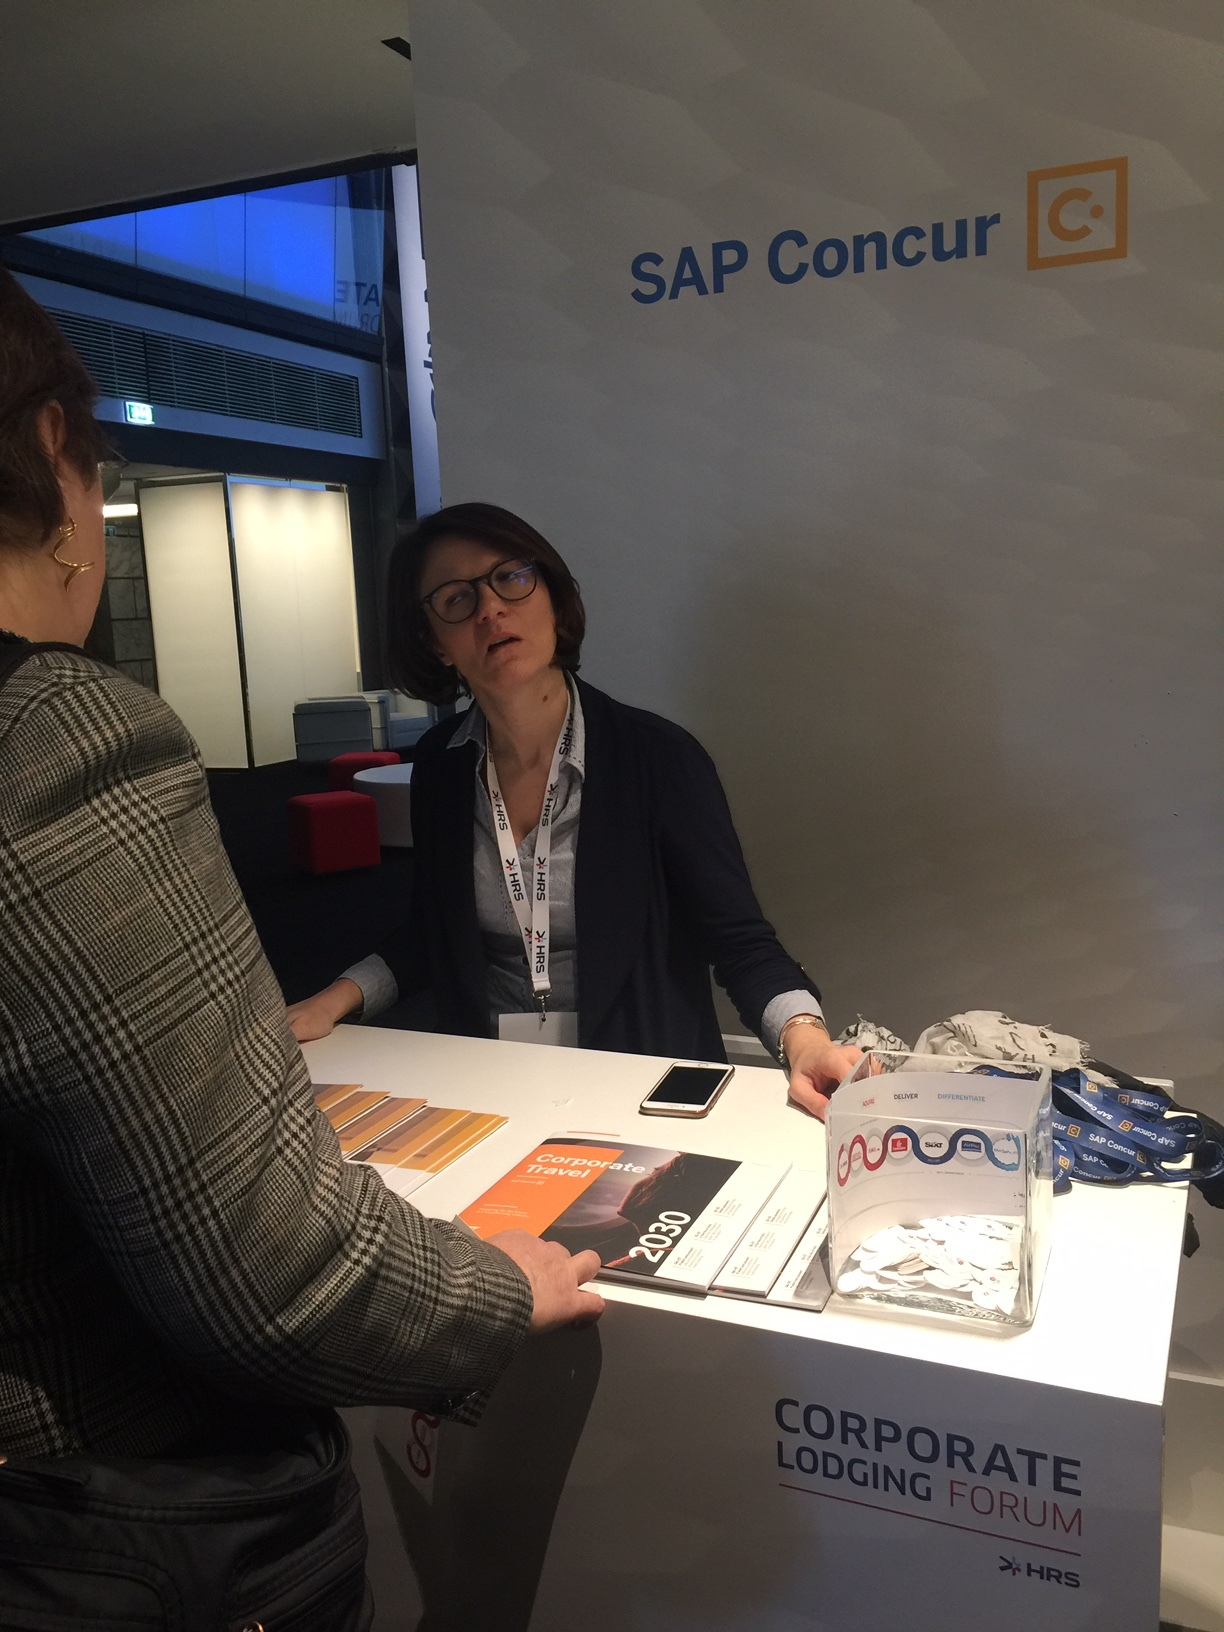 Stand SAP Concur - HRS Corporate Lodging Forum 2019 Milano